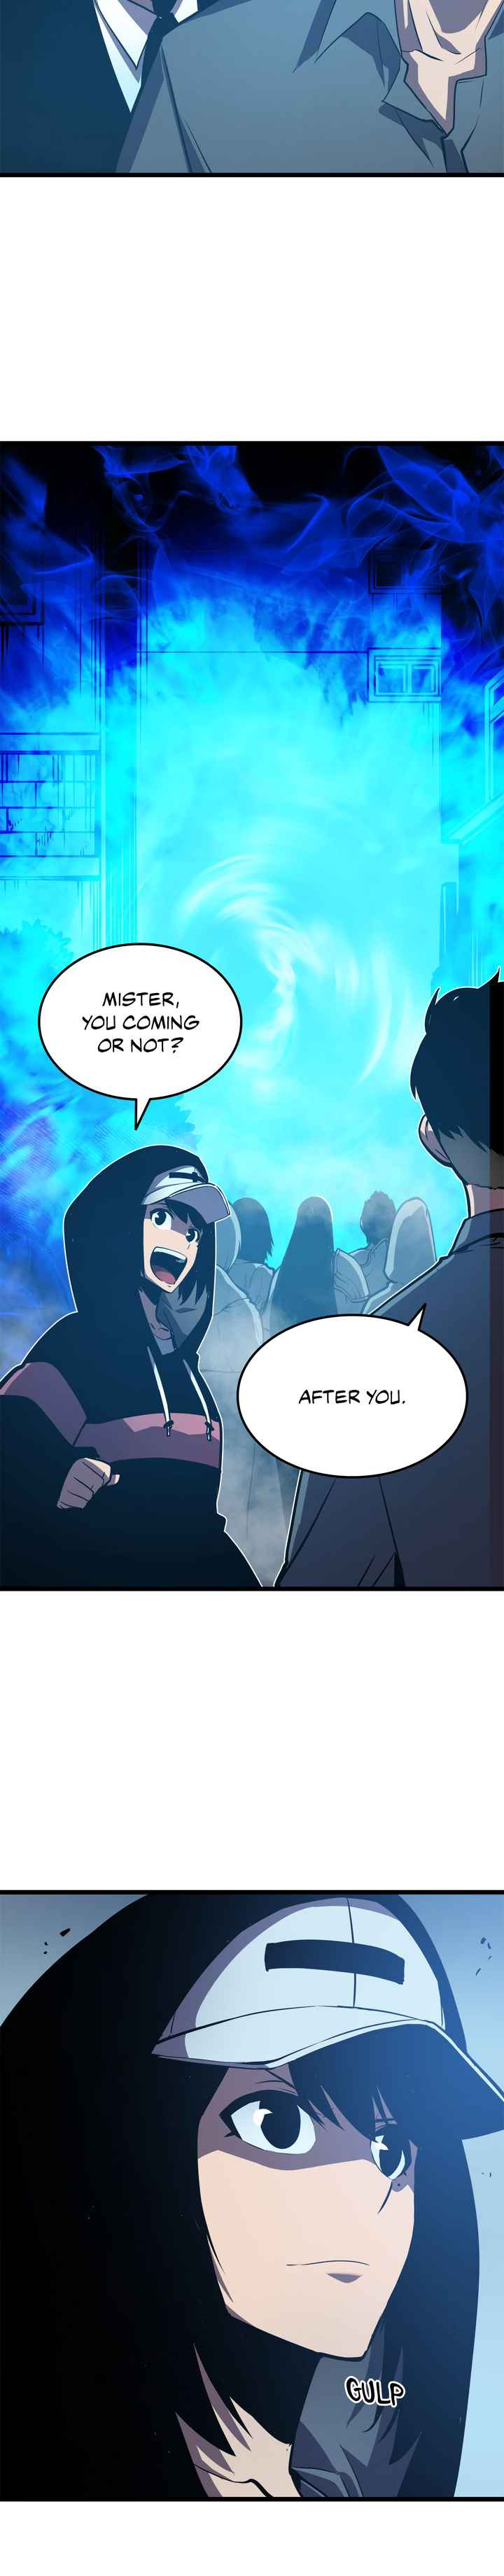 Solo Leveling Chapter 47 Page 19